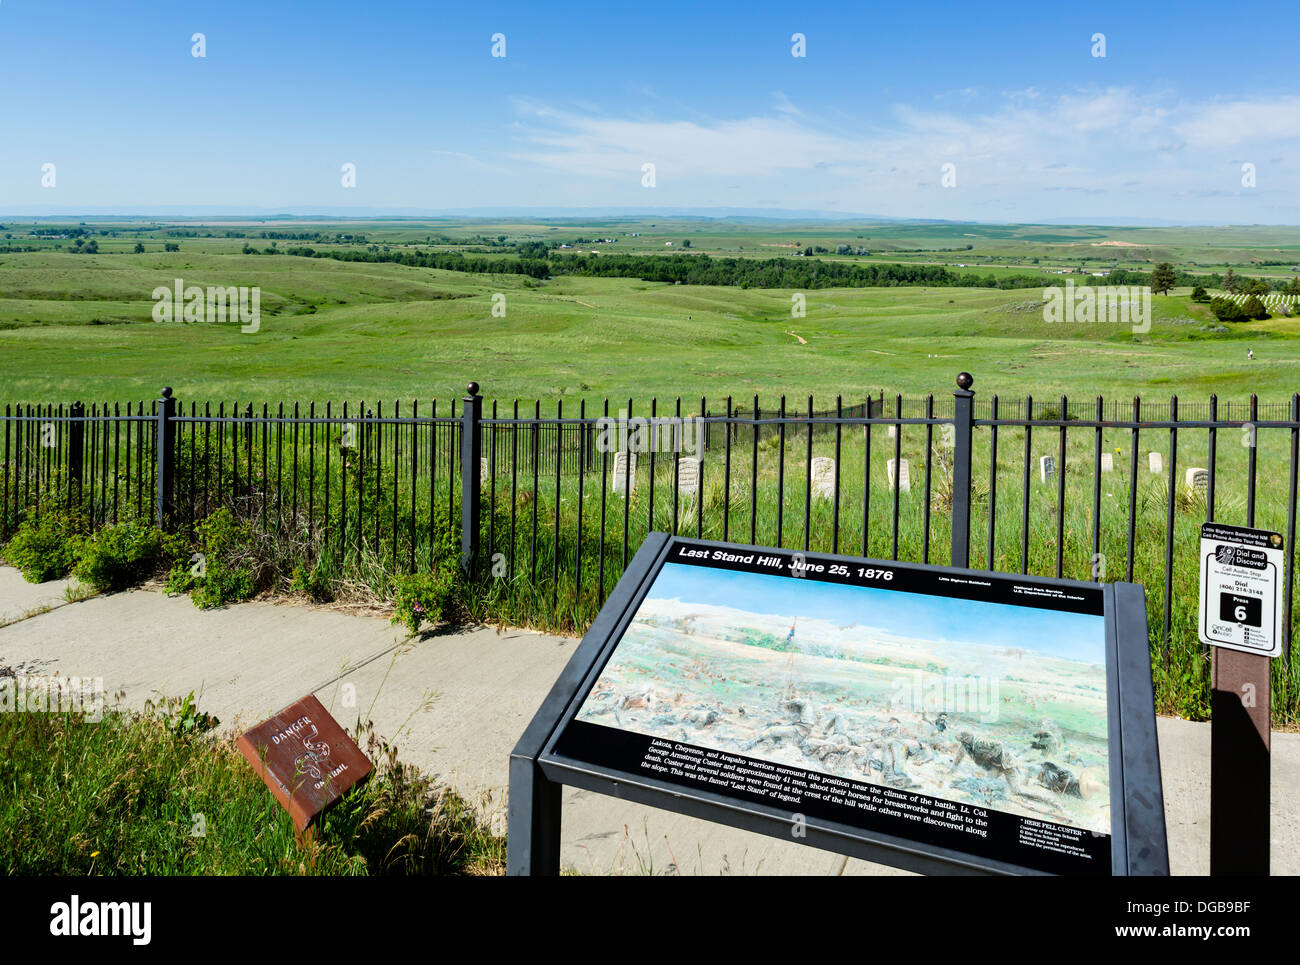 View from the 7th Cavalry US Army Memorial on Last Stand Hill, Little Bighorn Battlefield National Monument, Montana, Stock Photo